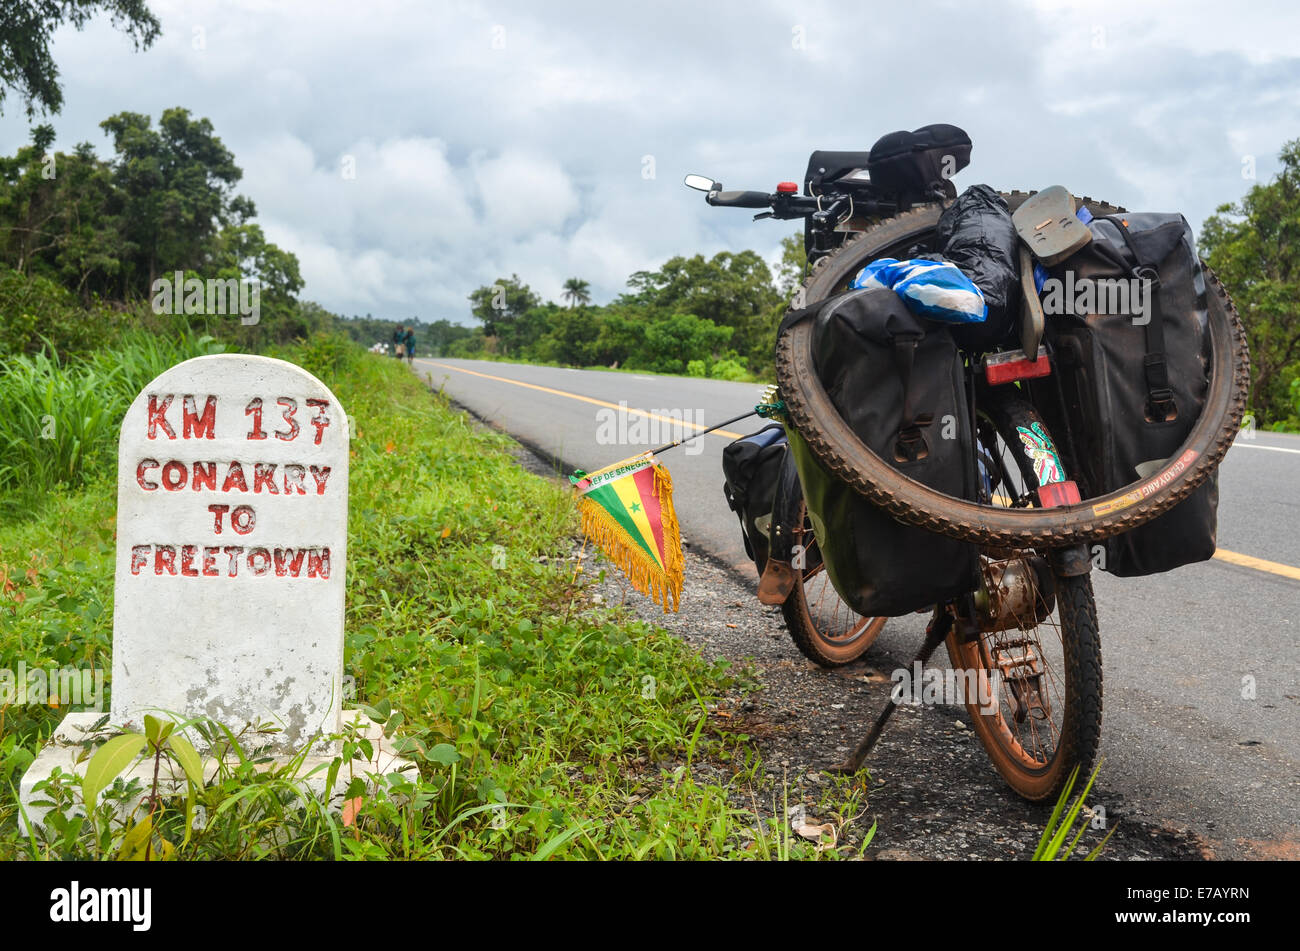 Milestone reading kilometers from Conakry to Freetown on the EU-funded newly built road in Sierra Leone - Stock Image